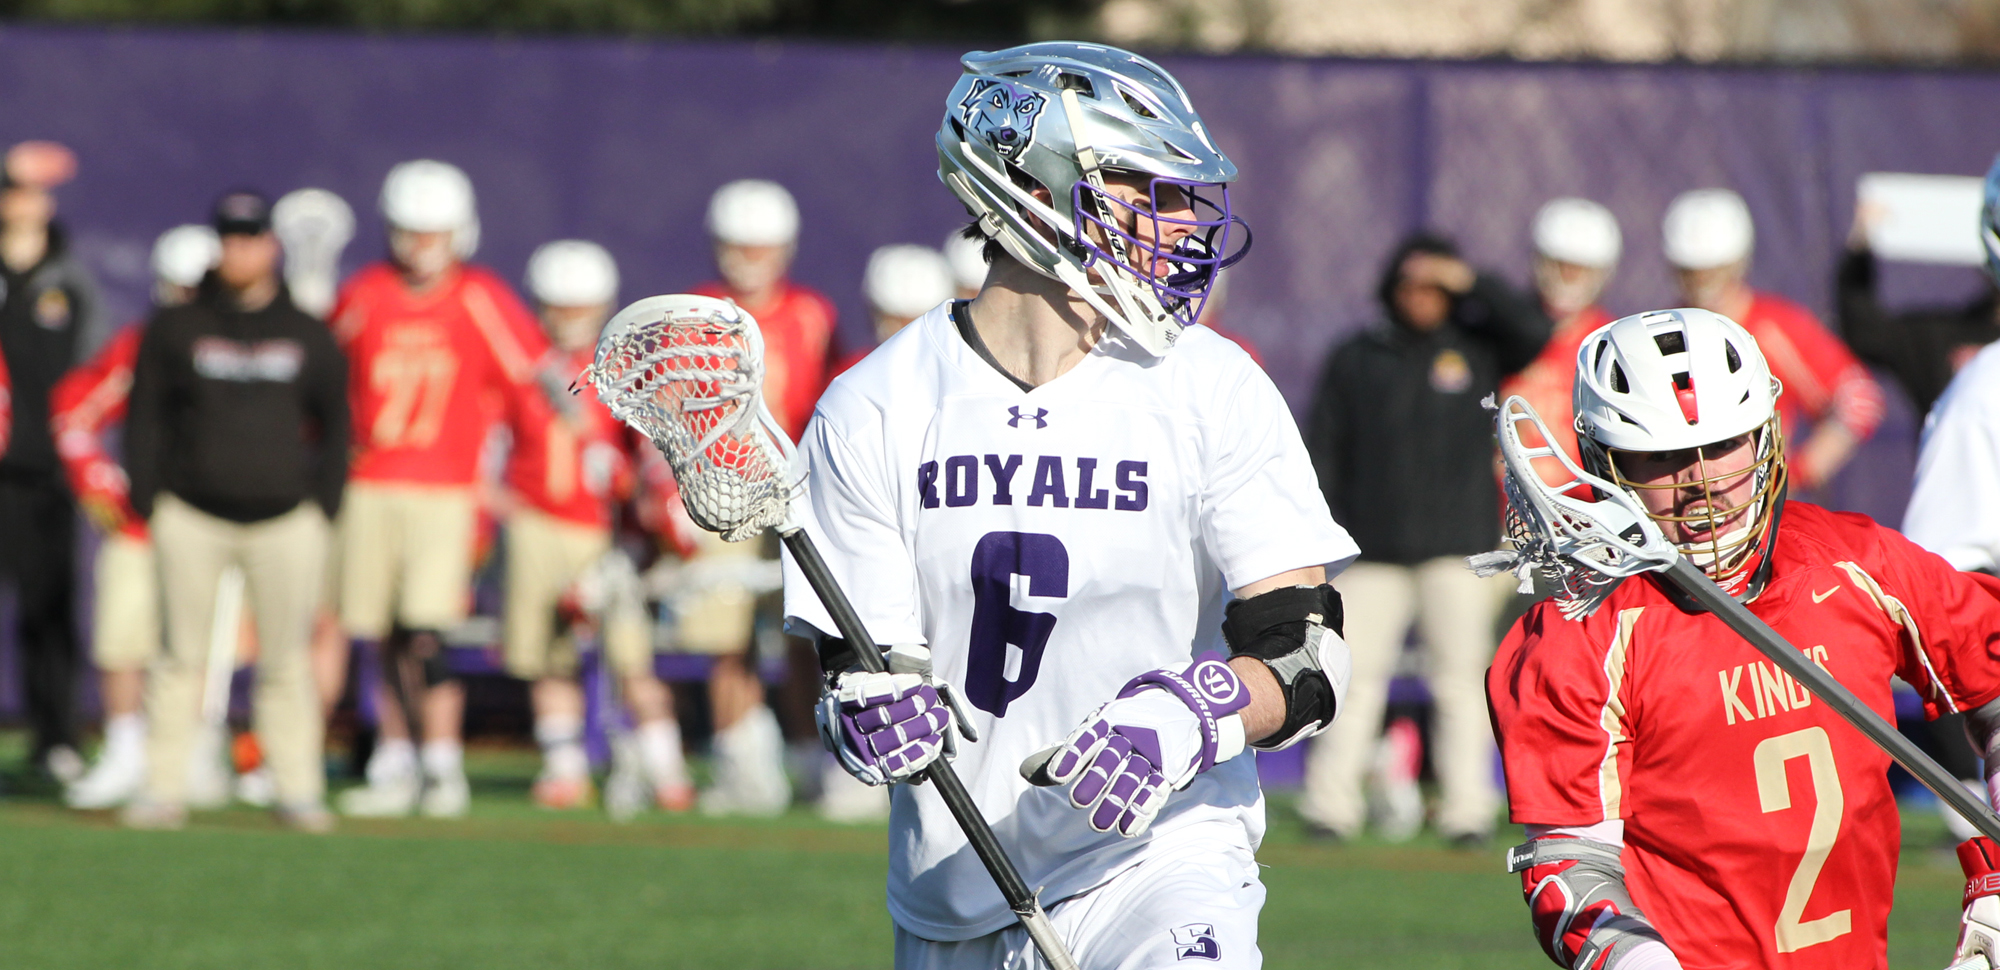 Junior Connor Kirkwood scored three goals and added an assist on Saturday as Scranton defeated Plattsburgh, 11-10. © Photo by Timothy R. Dougherty / doubleeaglephotography.com